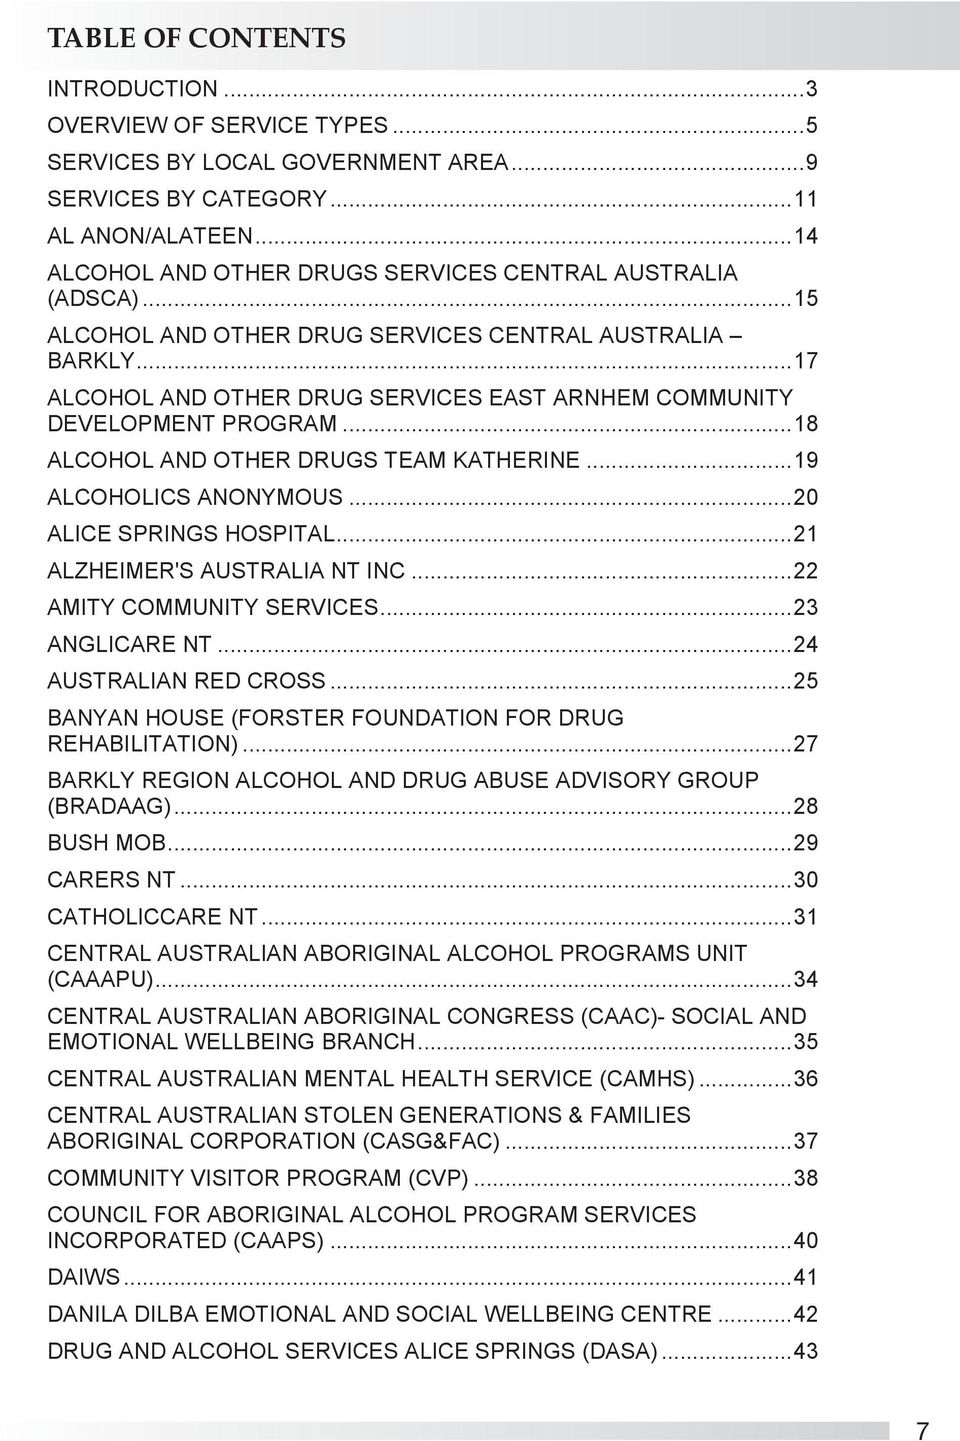 .. 17 ALCOHOL AND OTHER DRUG SERVICES EAST ARNHEM COMMUNITY DEVELOPMENT PROGRAM... 18 ALCOHOL AND OTHER DRUGS TEAM KATHERINE... 19 ALCOHOLICS ANONYMOUS... 20 ALICE SPRINGS HOSPITAL.